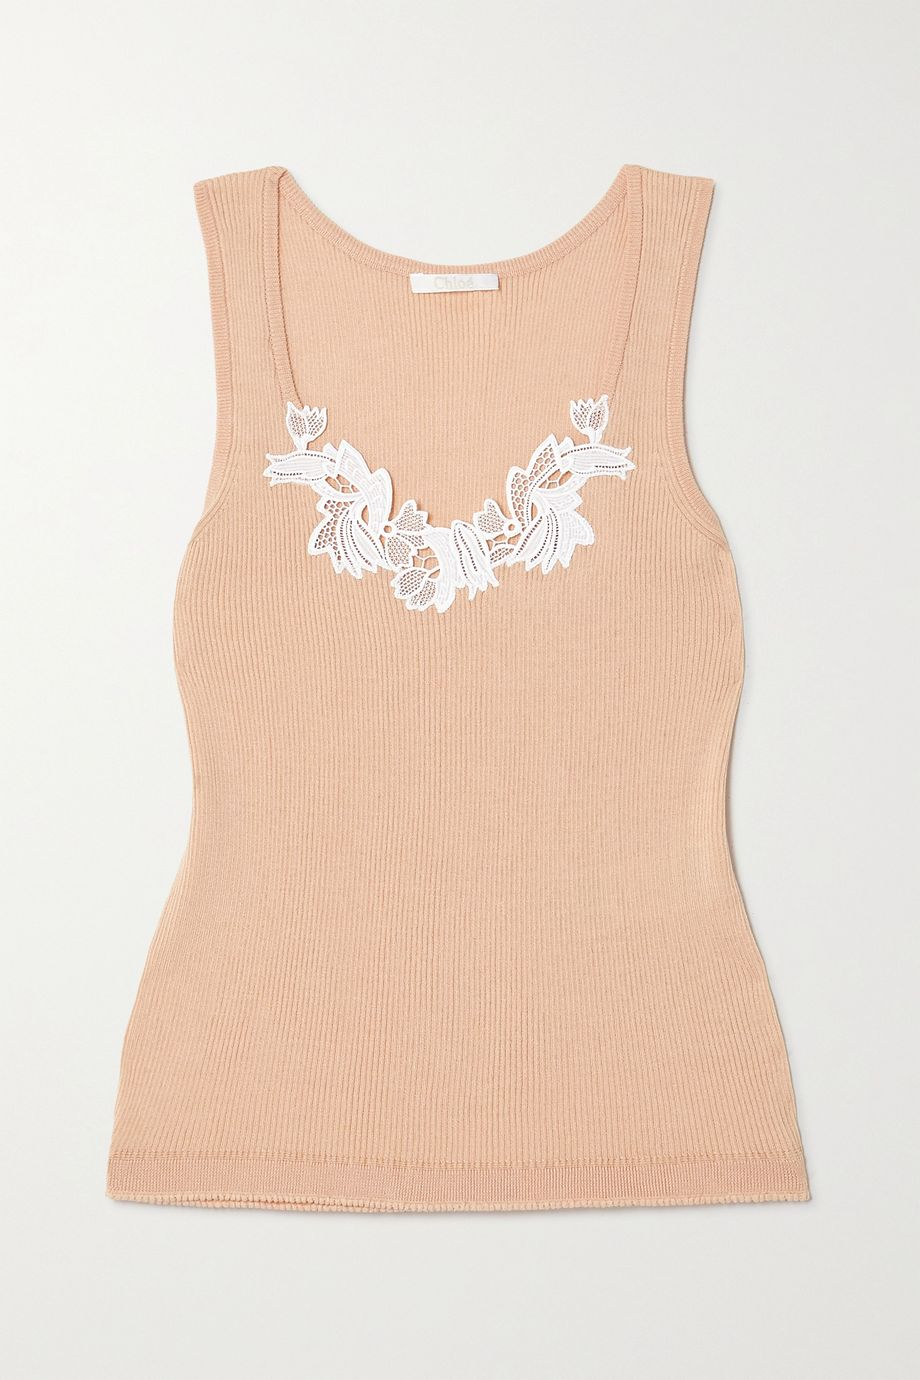 Chloé Guipure lace-trimmed ribbed cotton-jersey tank